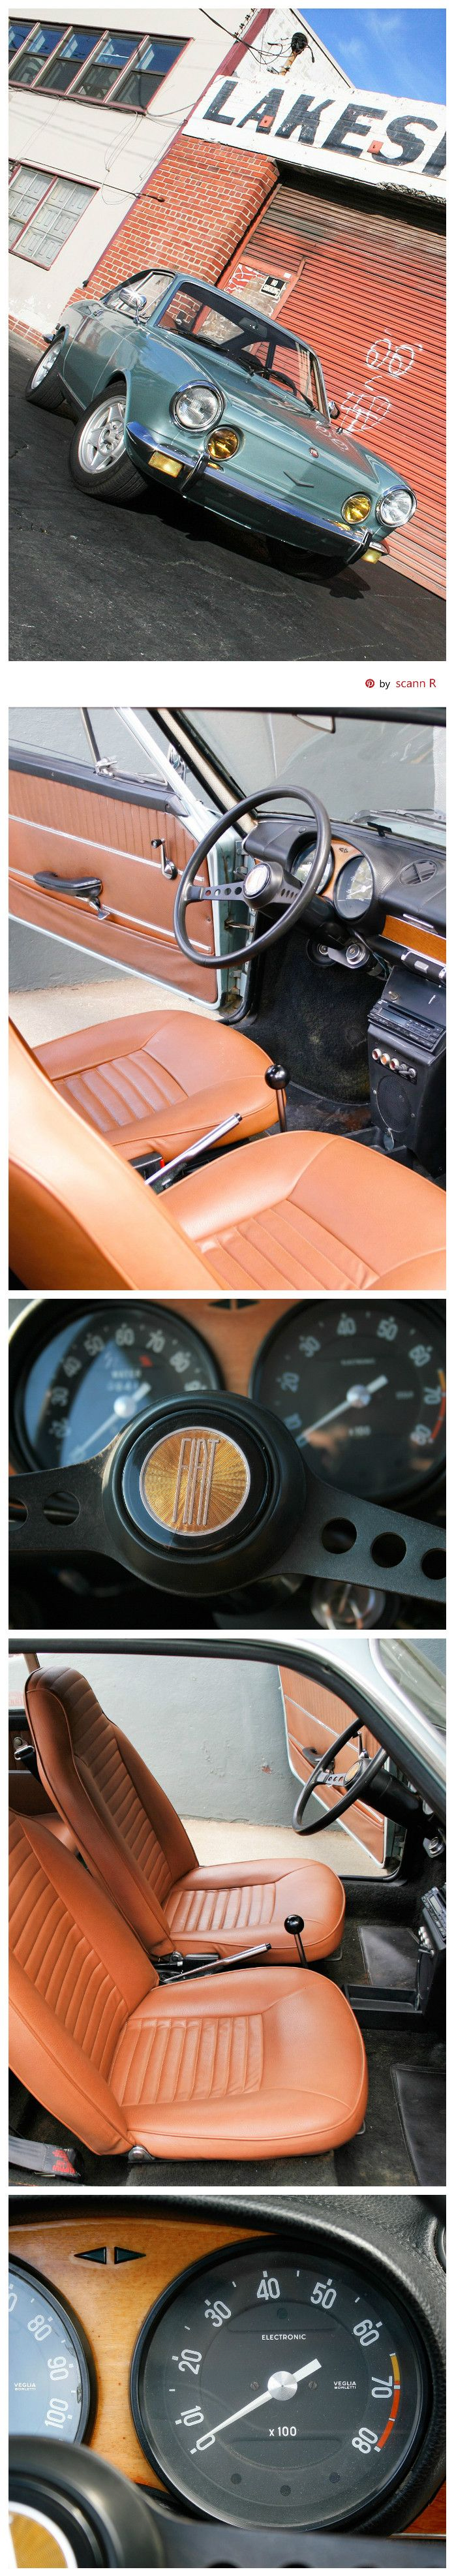 1971 Fiat 850 Sport Coupe (Series II) interior | Pin made by scann R